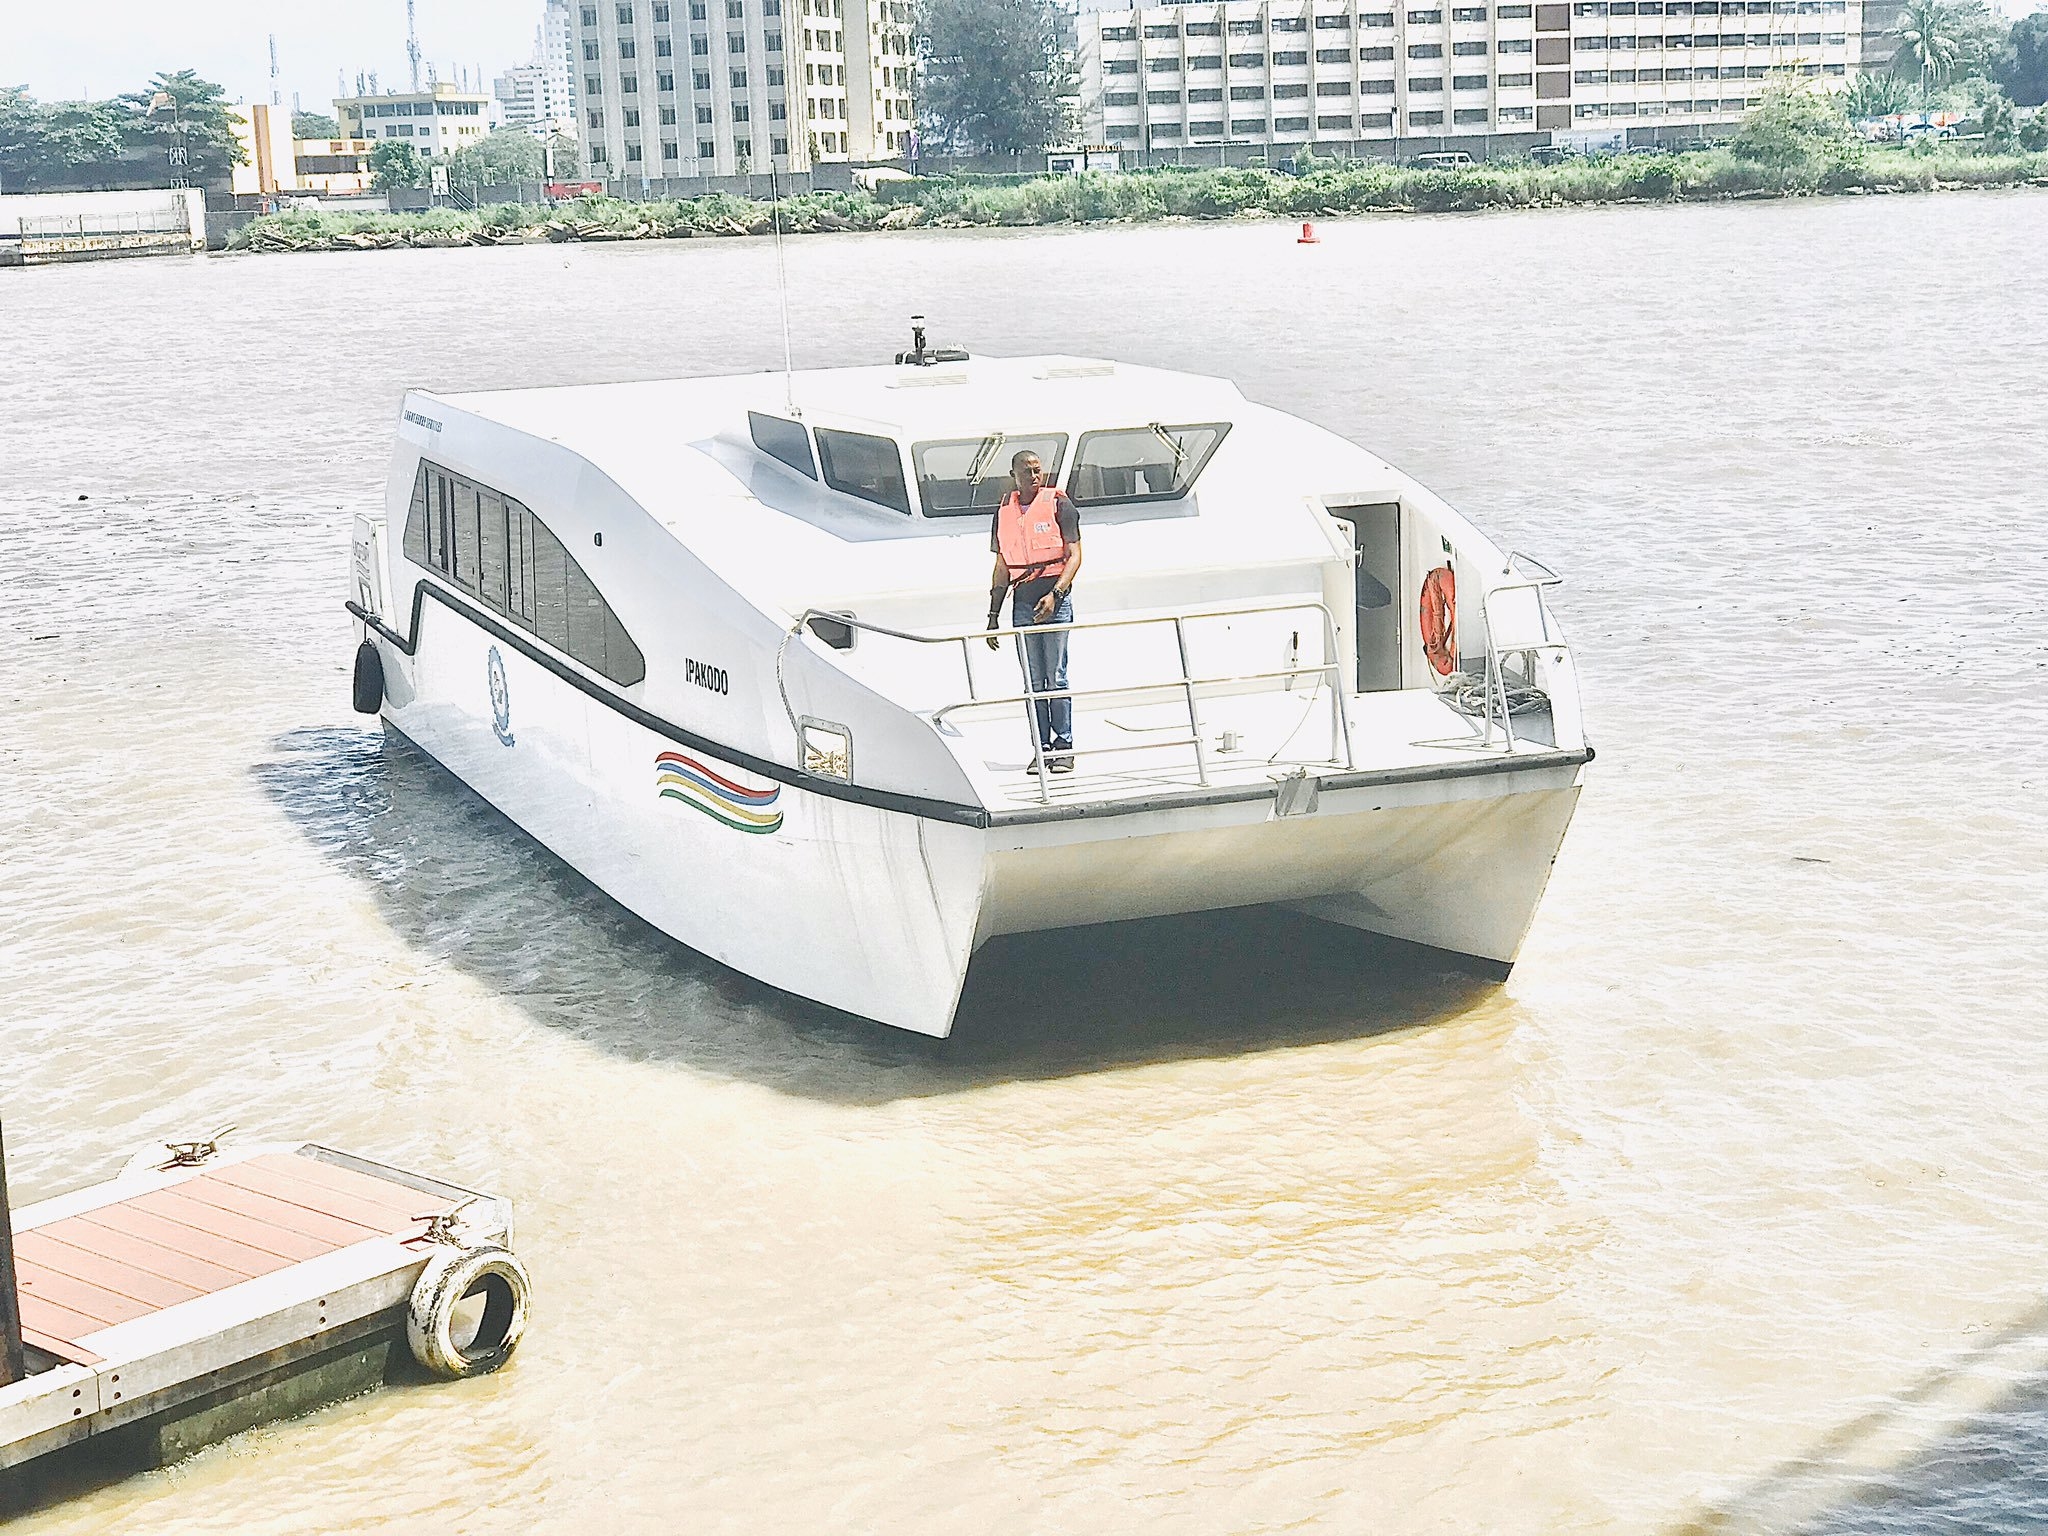 Photo News: We can't wait to decongest the traffic on Lagos roads - LagFerry